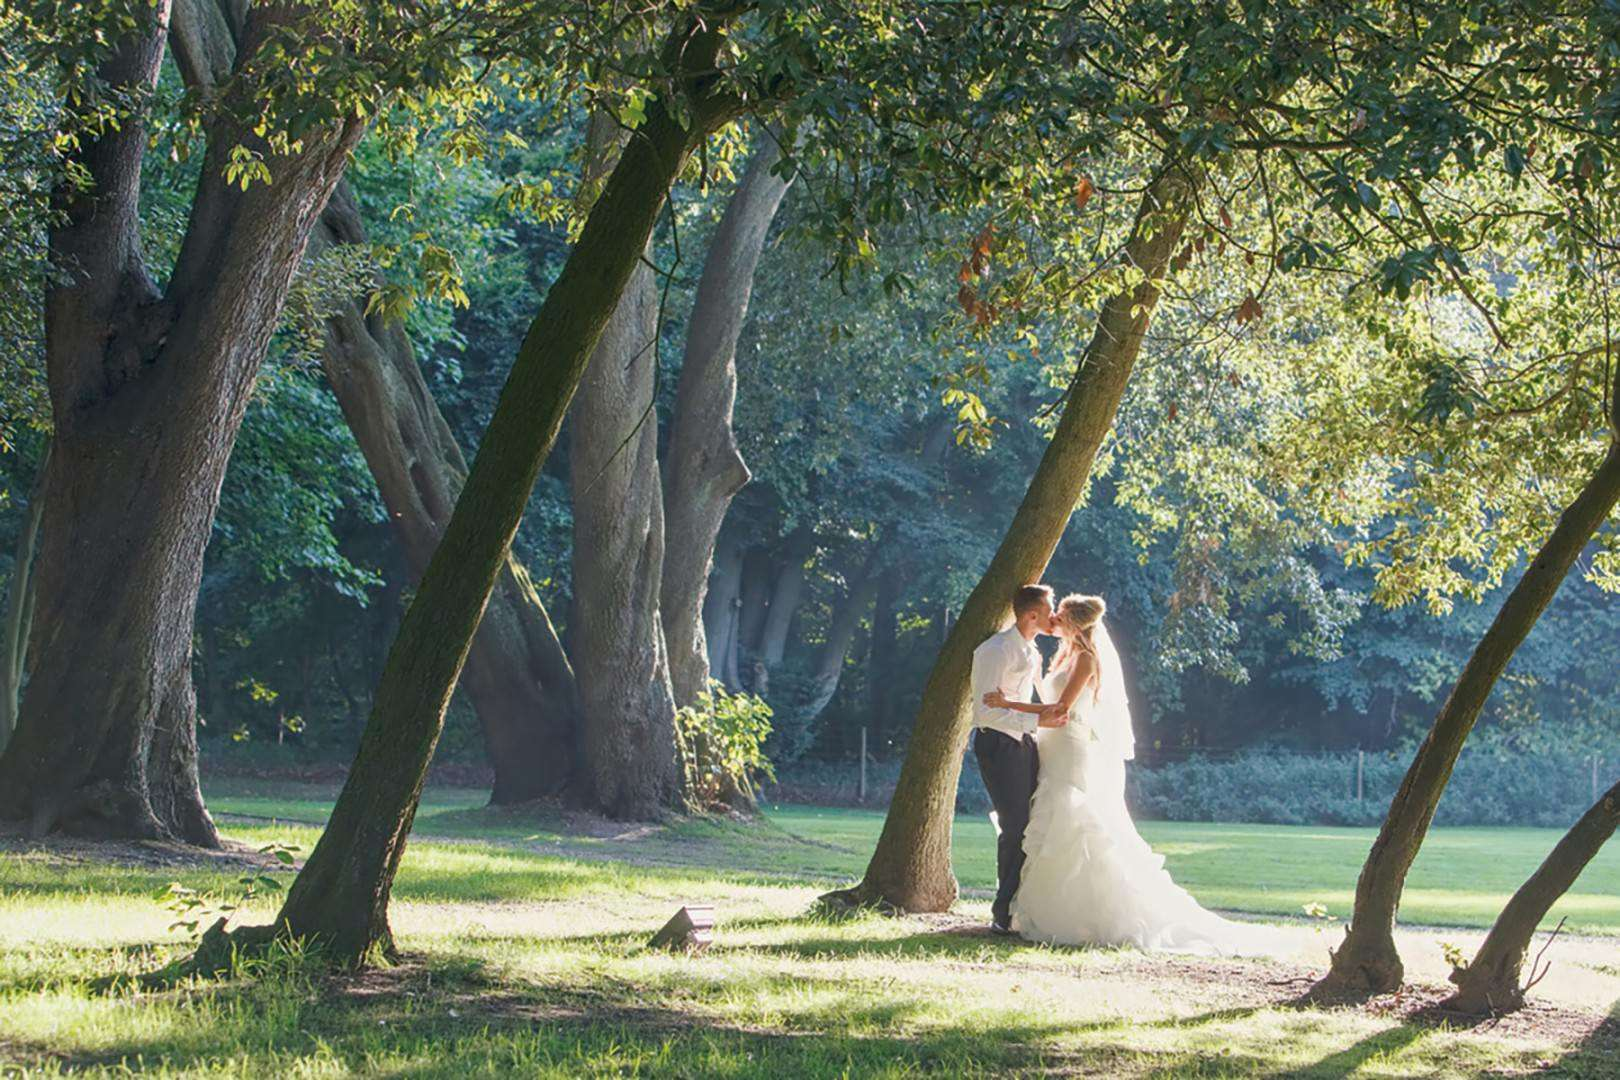 Autumn Wedding Open Day at Milsoms Kesgrave Hall – Sunday 7th October